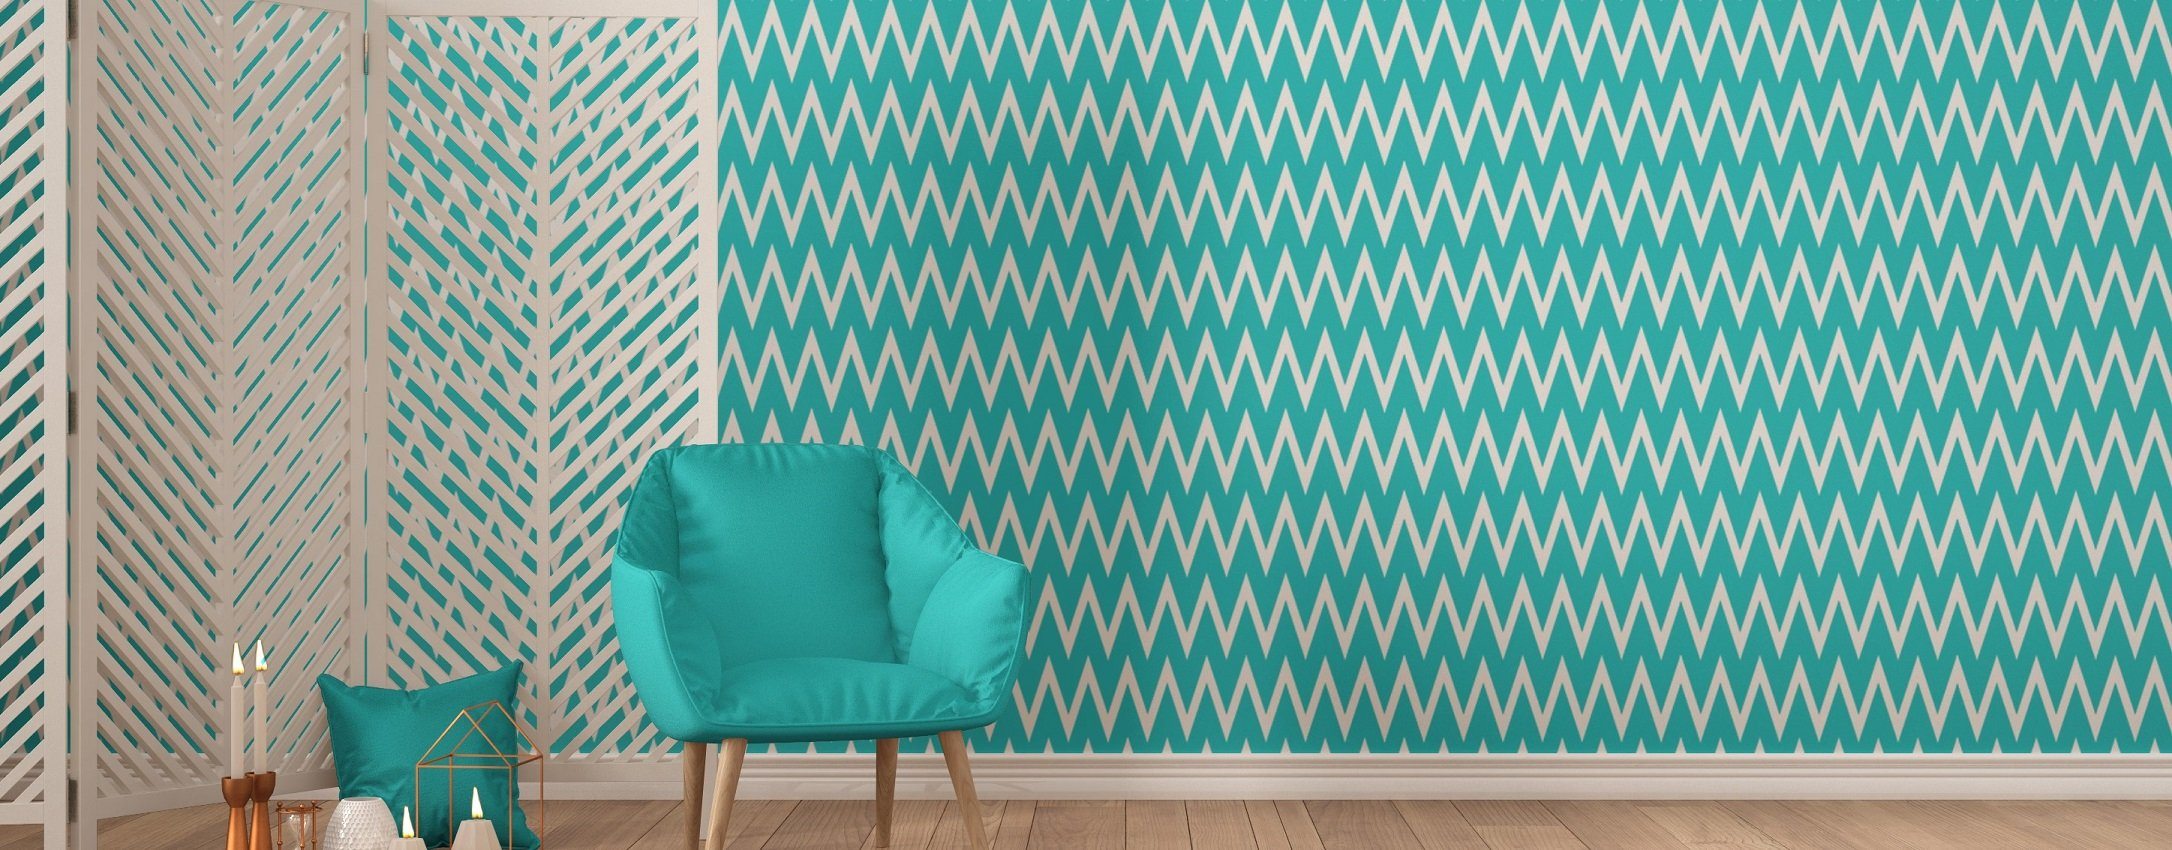 Amazon.com: Wall Paper Buying Guide: Home & Kitchen